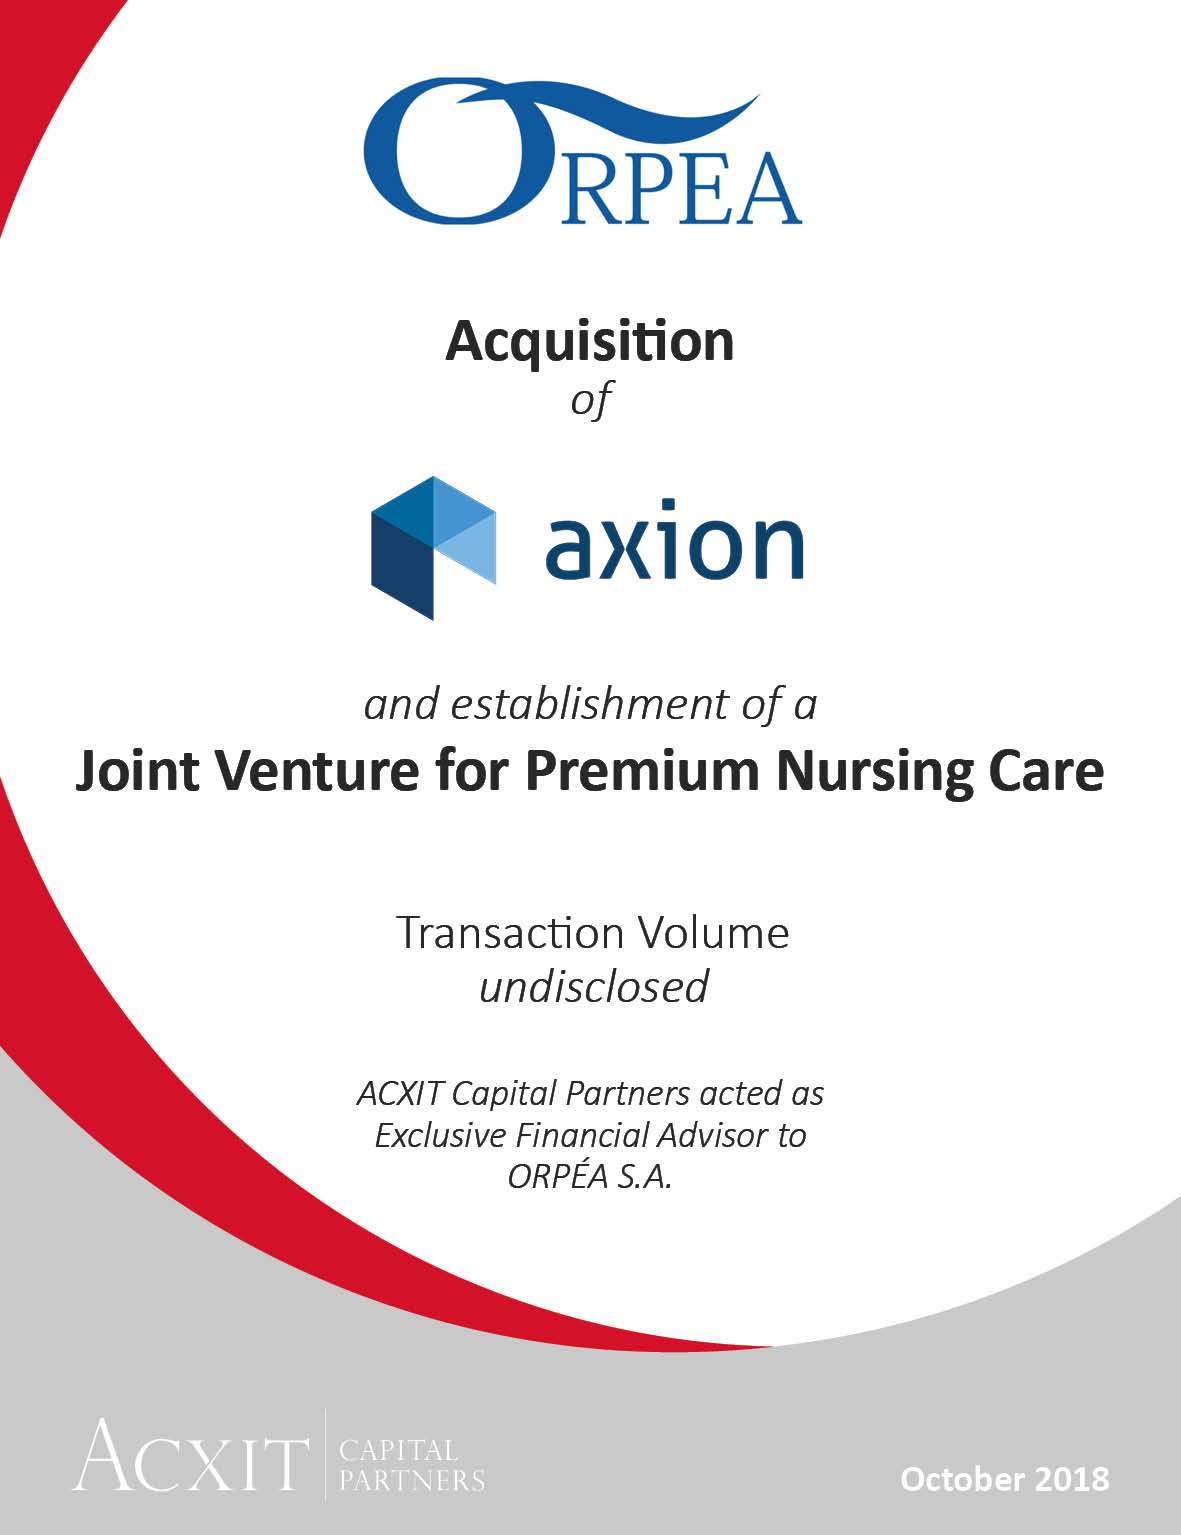 Acquisition of Axion Group by Orpea